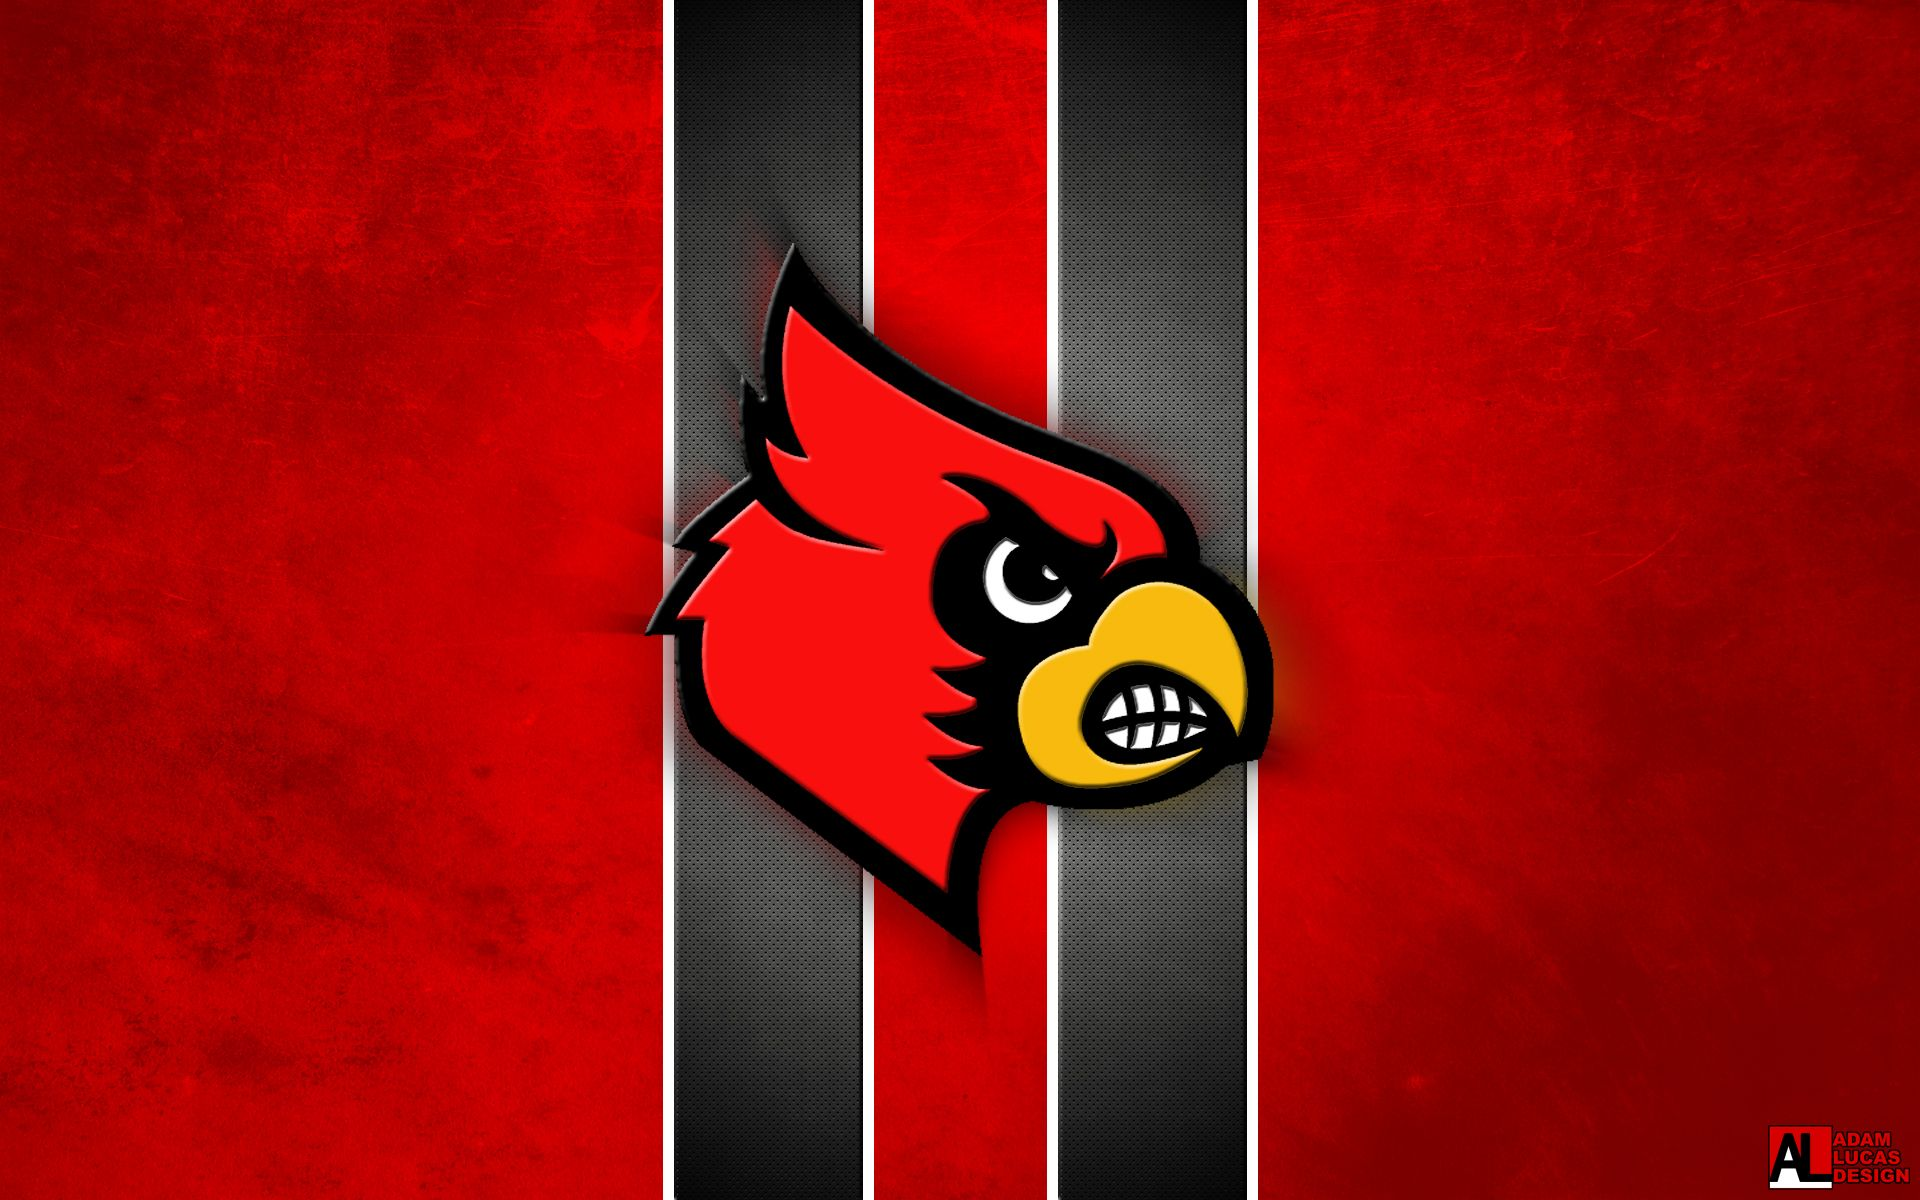 Wallpaper Louisville Uofl Logo Wallpaper Desktop And Mobile L1c4 Go Cards